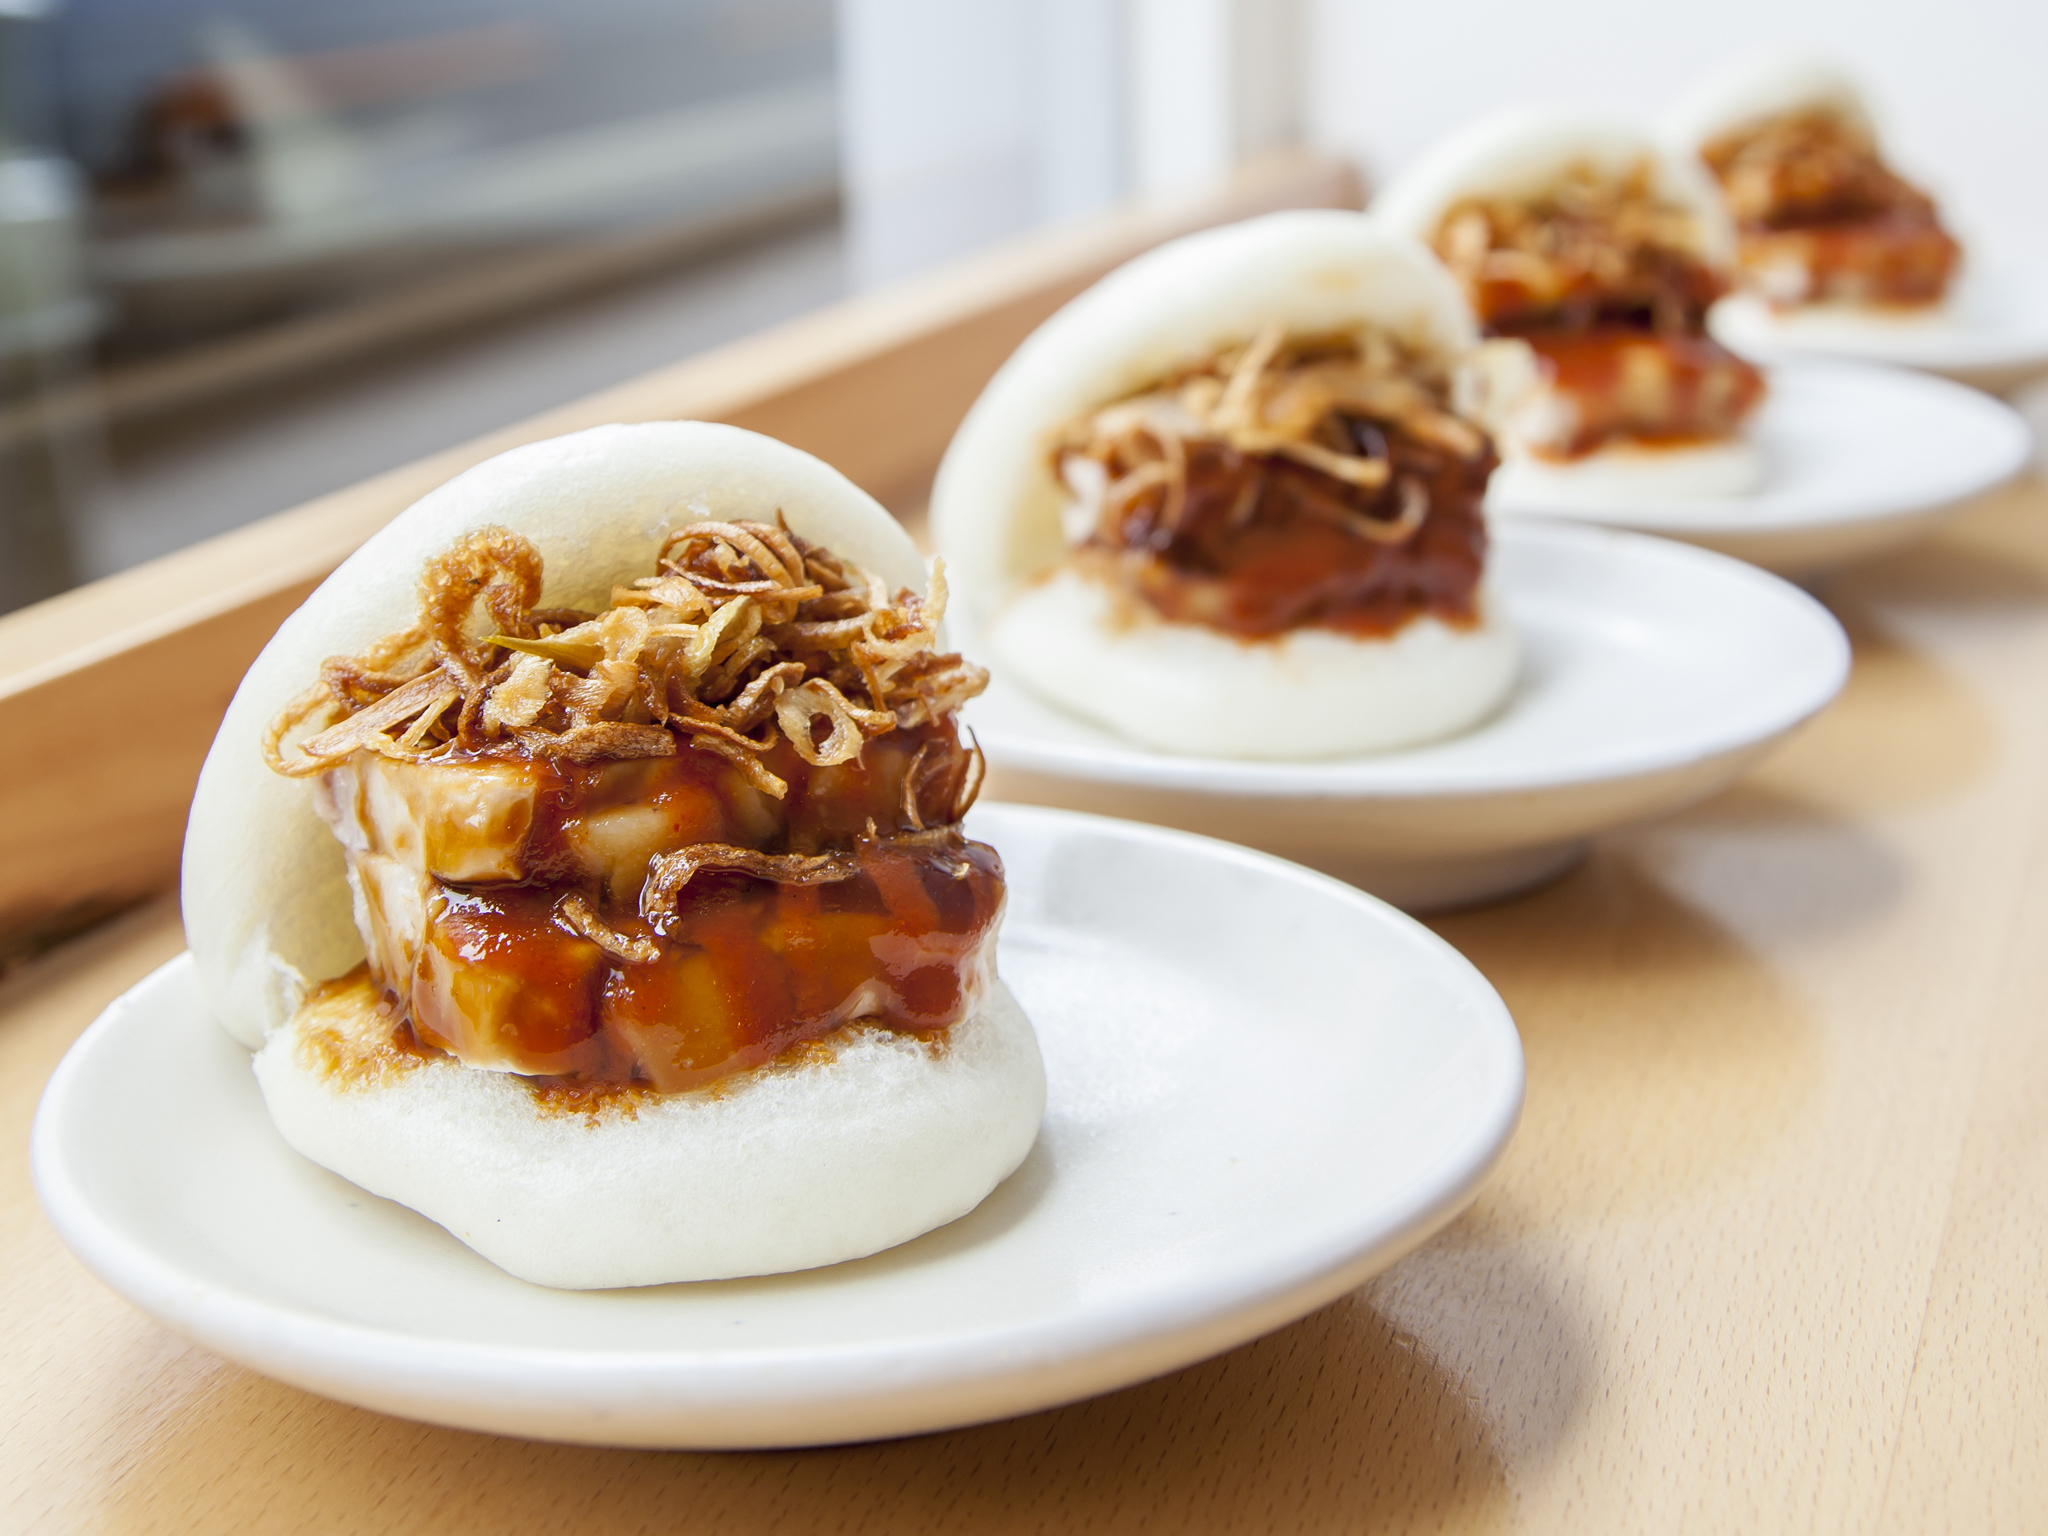 The 100 best cheap eats in London, Bao